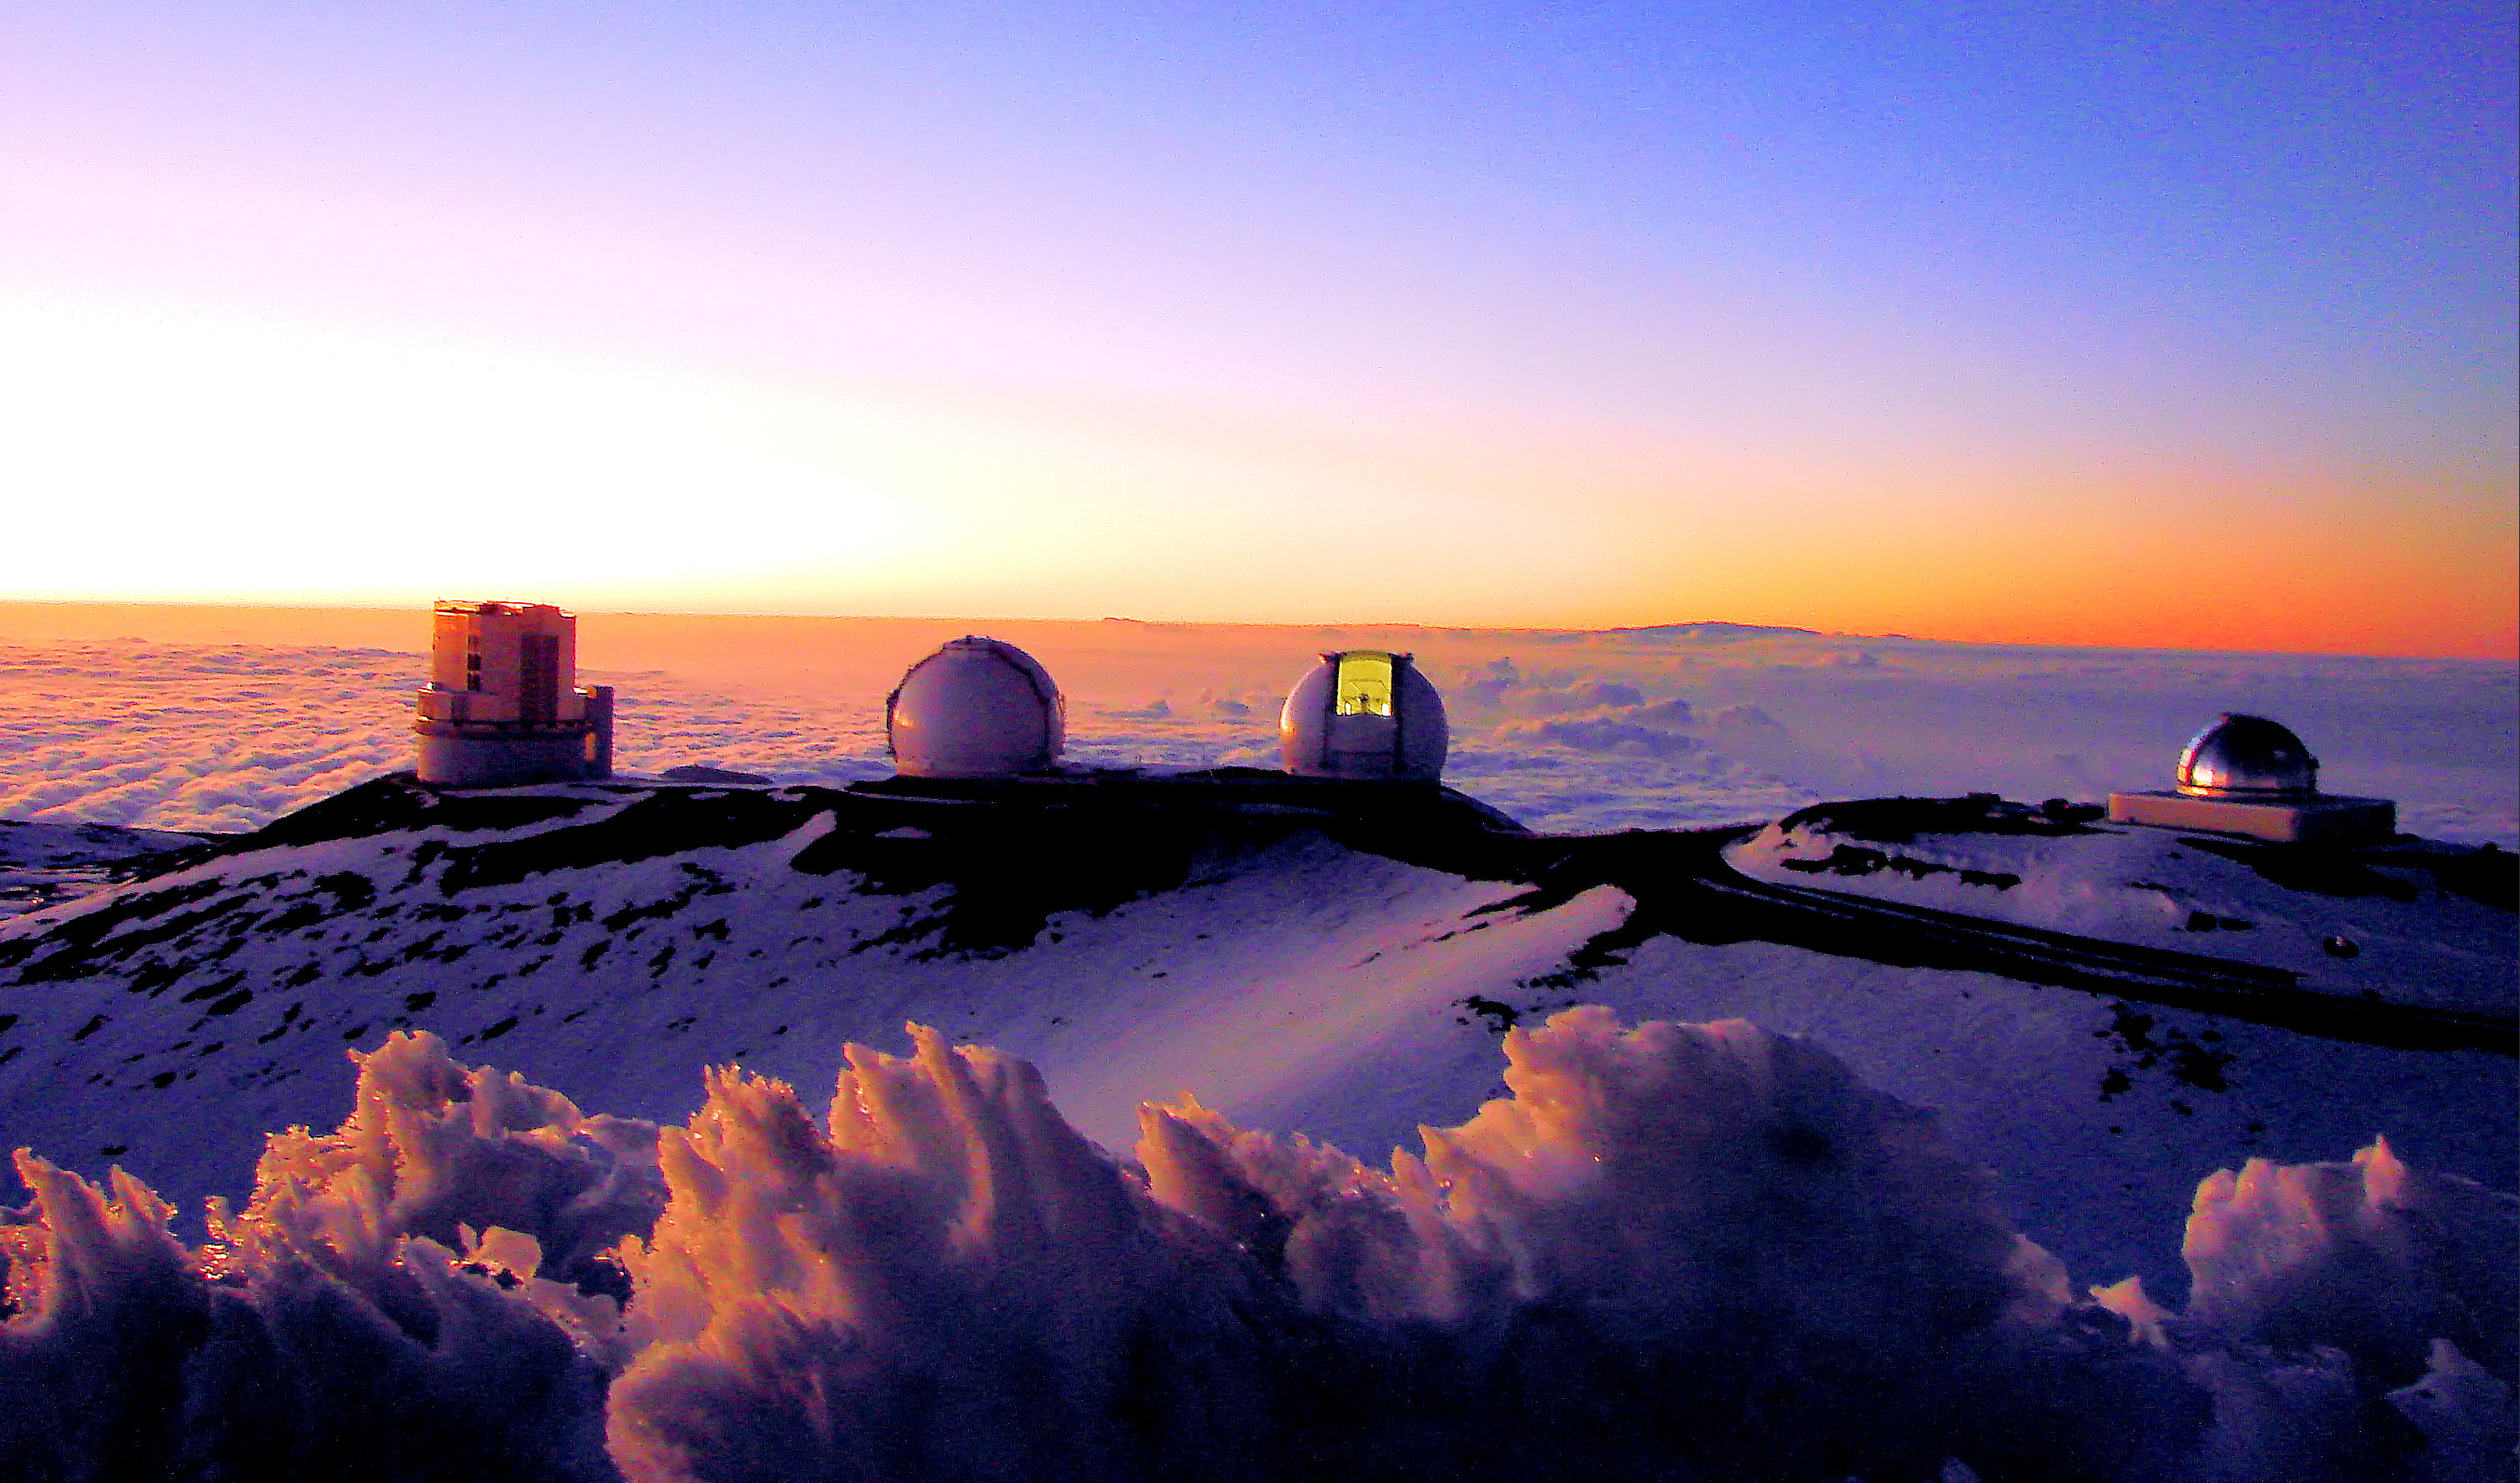 University of Hawaiʻi reports progress on governor's 10 point plan for Maunakea